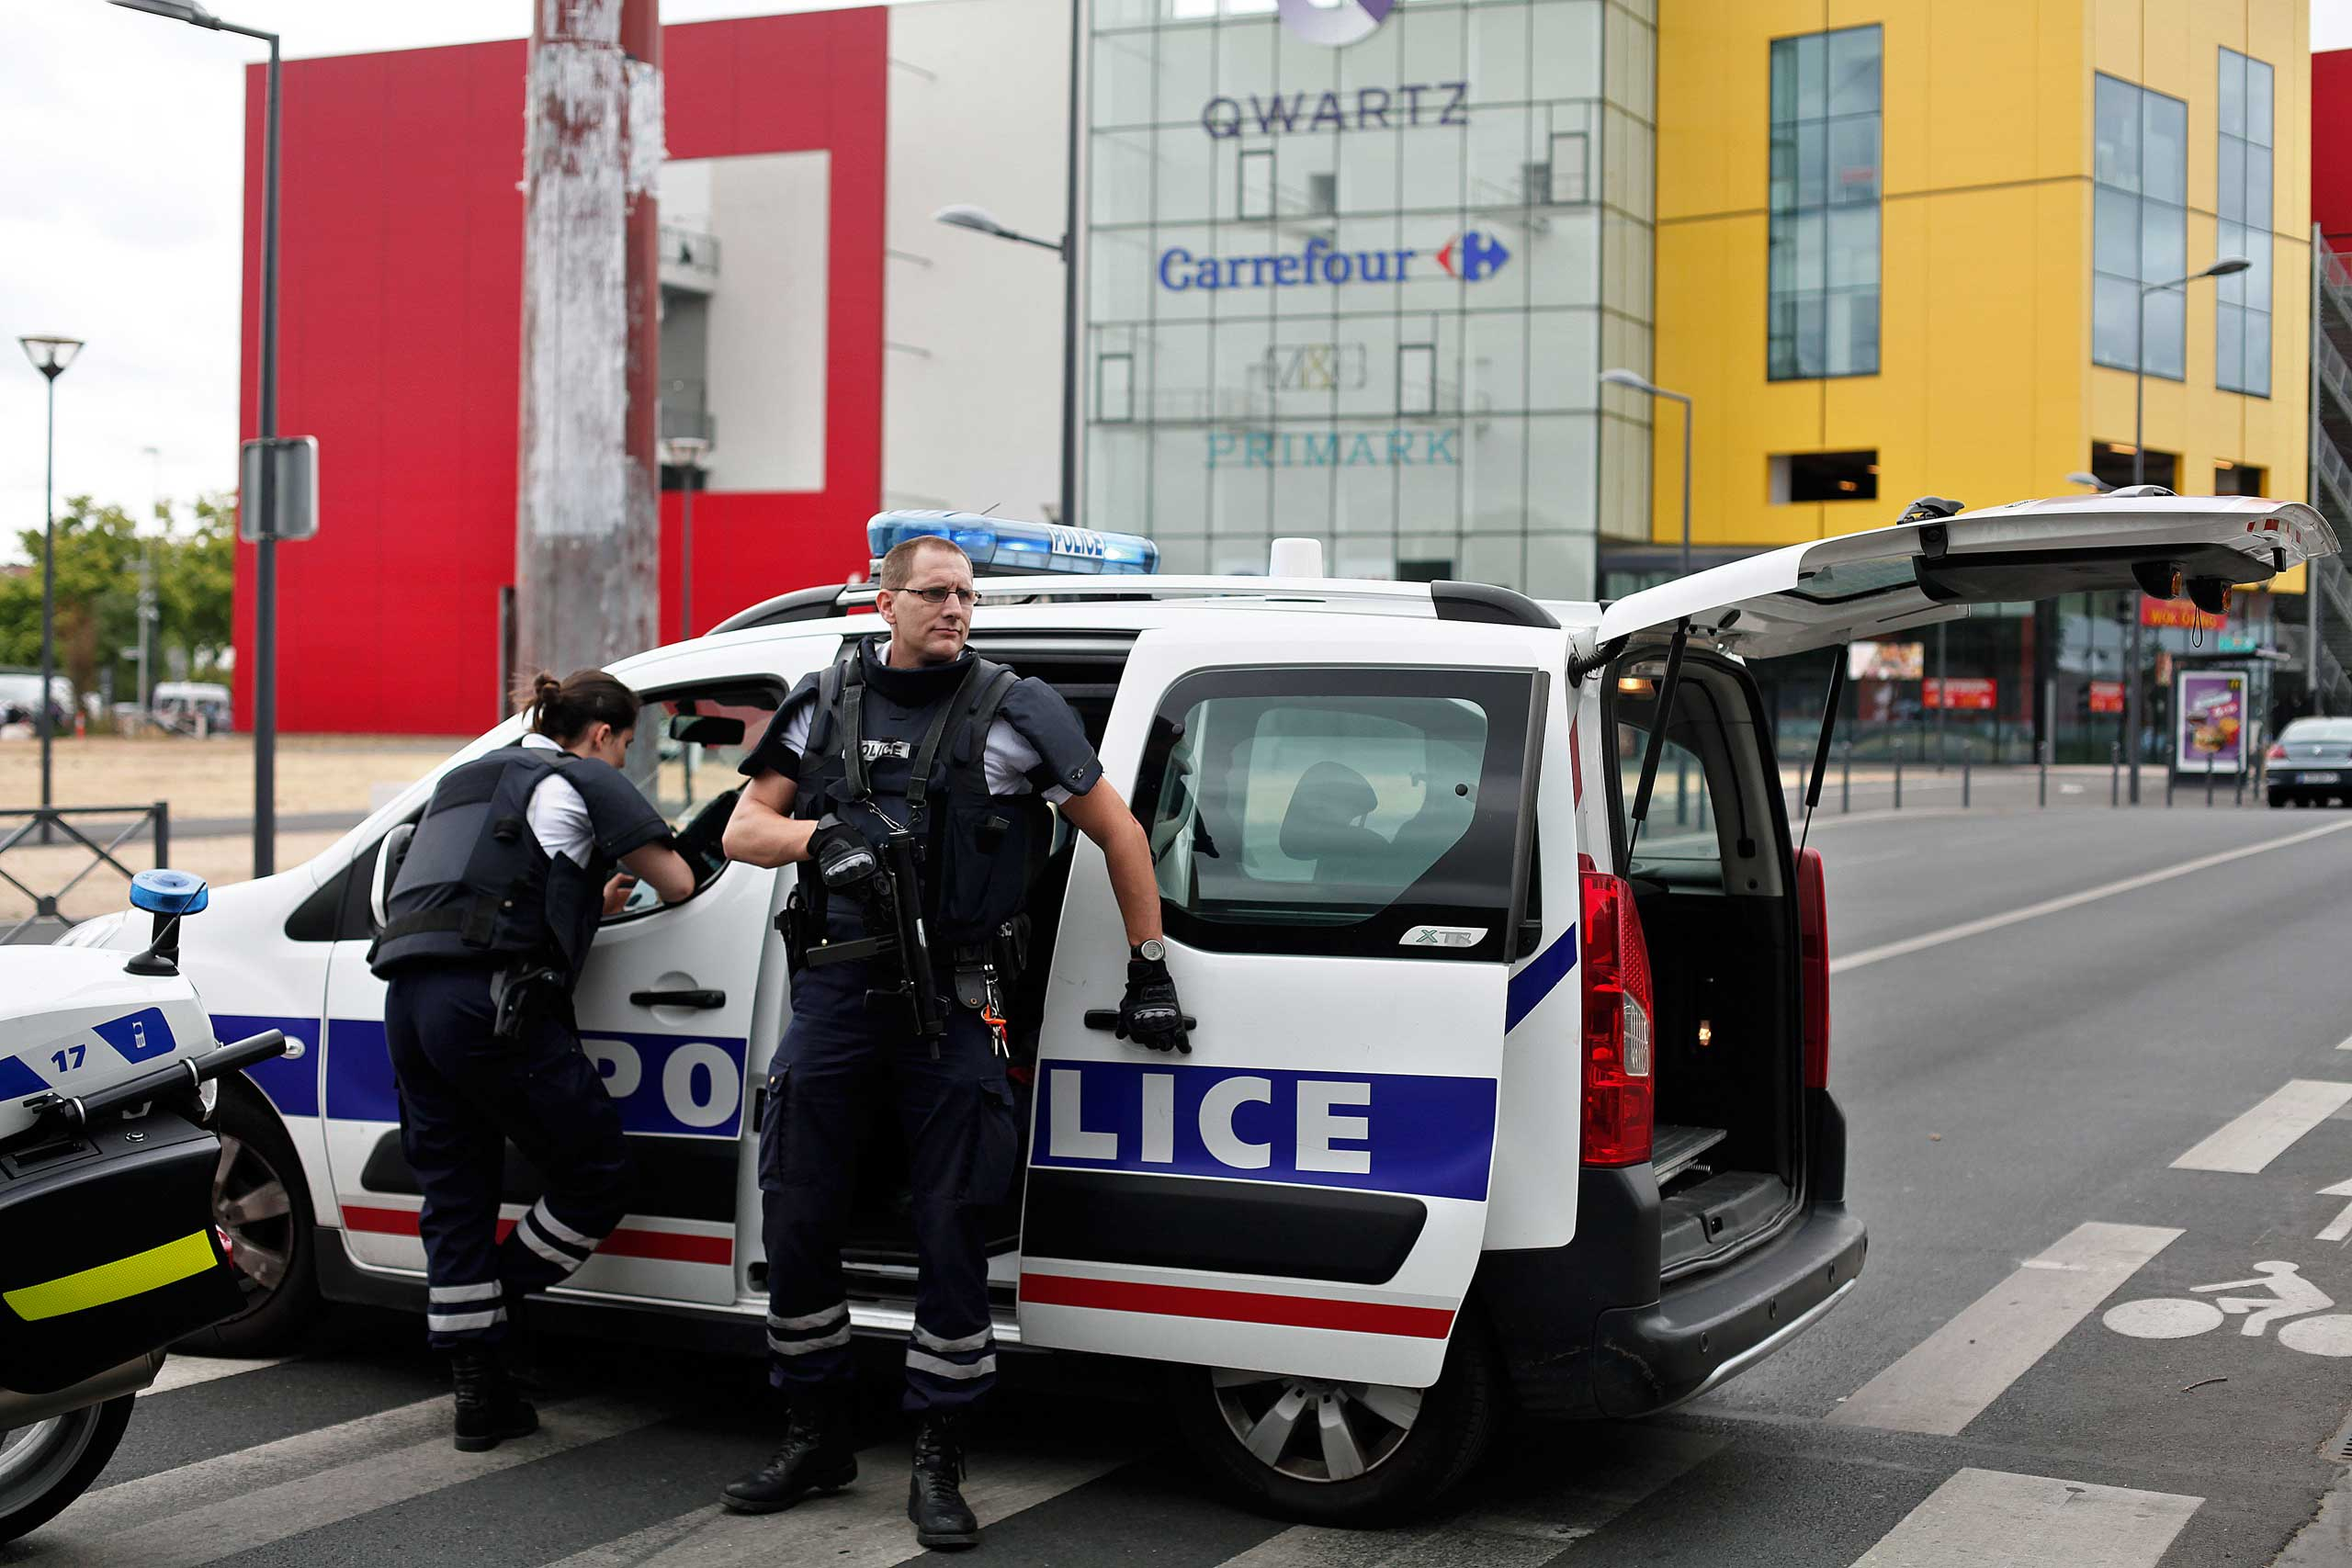 Police officers stand outside a suburban clothing store, in Villeneuve-la-Garenne, north of Paris on July 13, 2015.